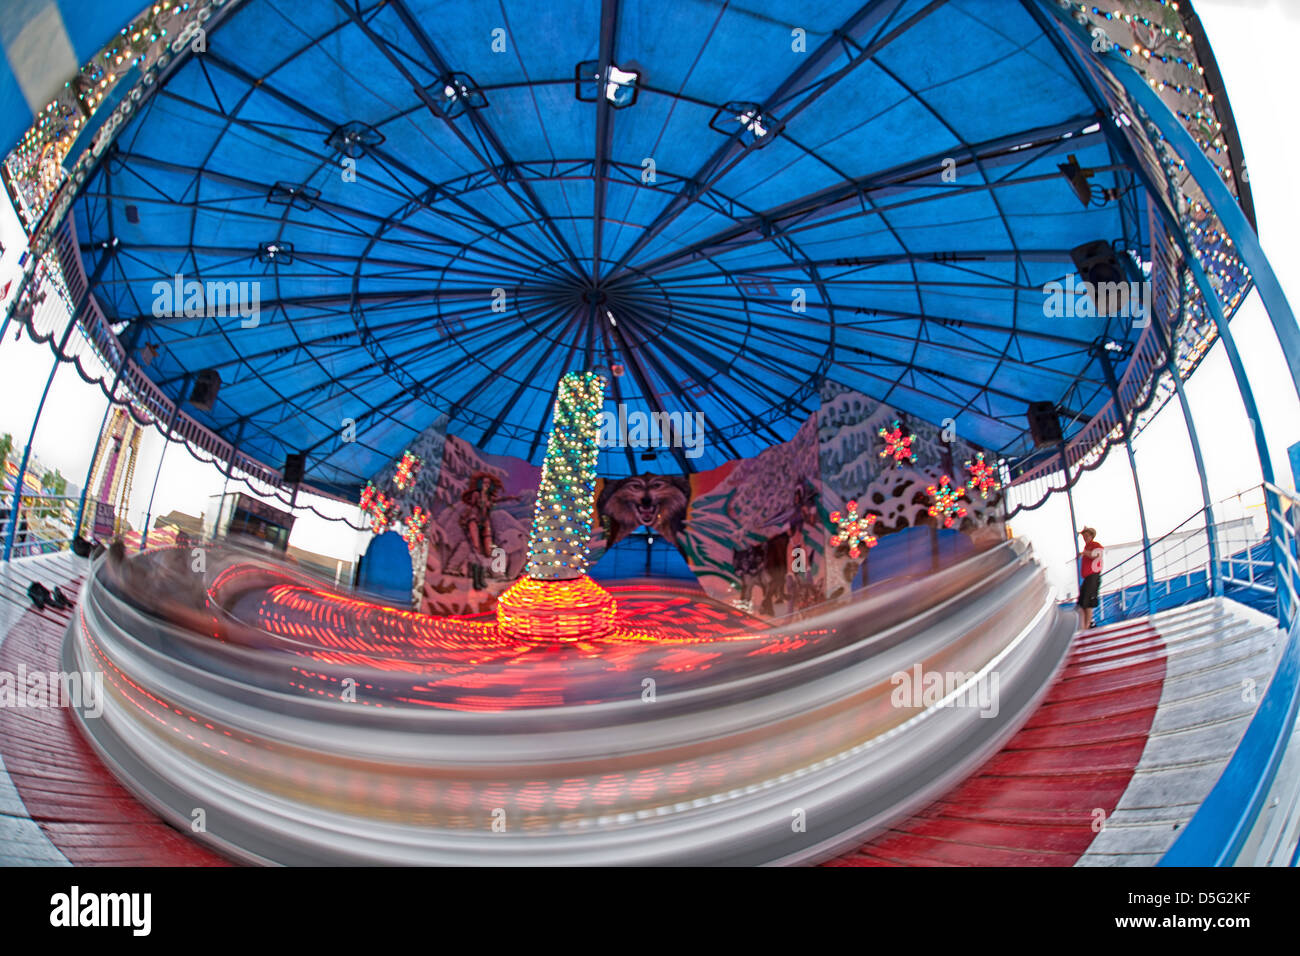 amusement ride, the spinner, in motion. - Stock Image